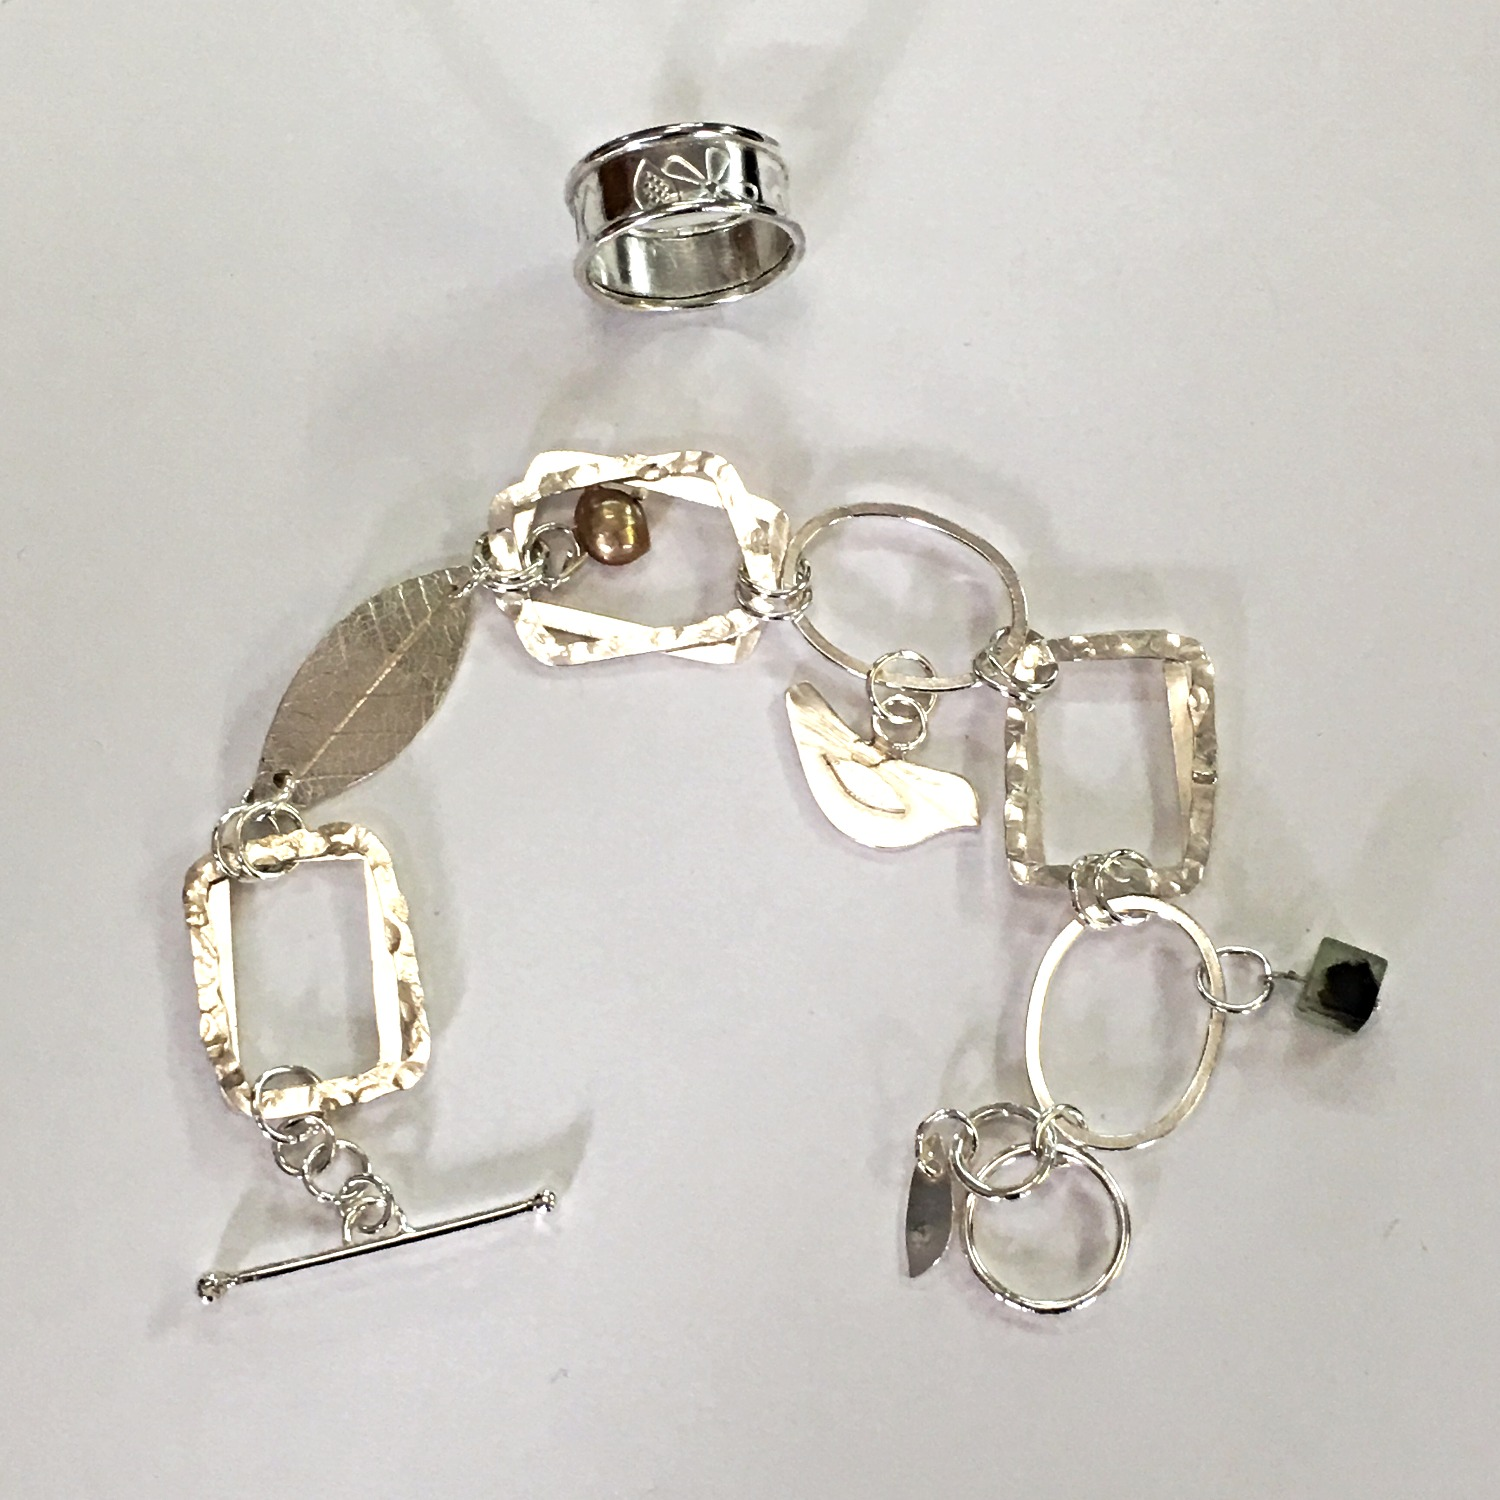 Silver Jewellery Making course